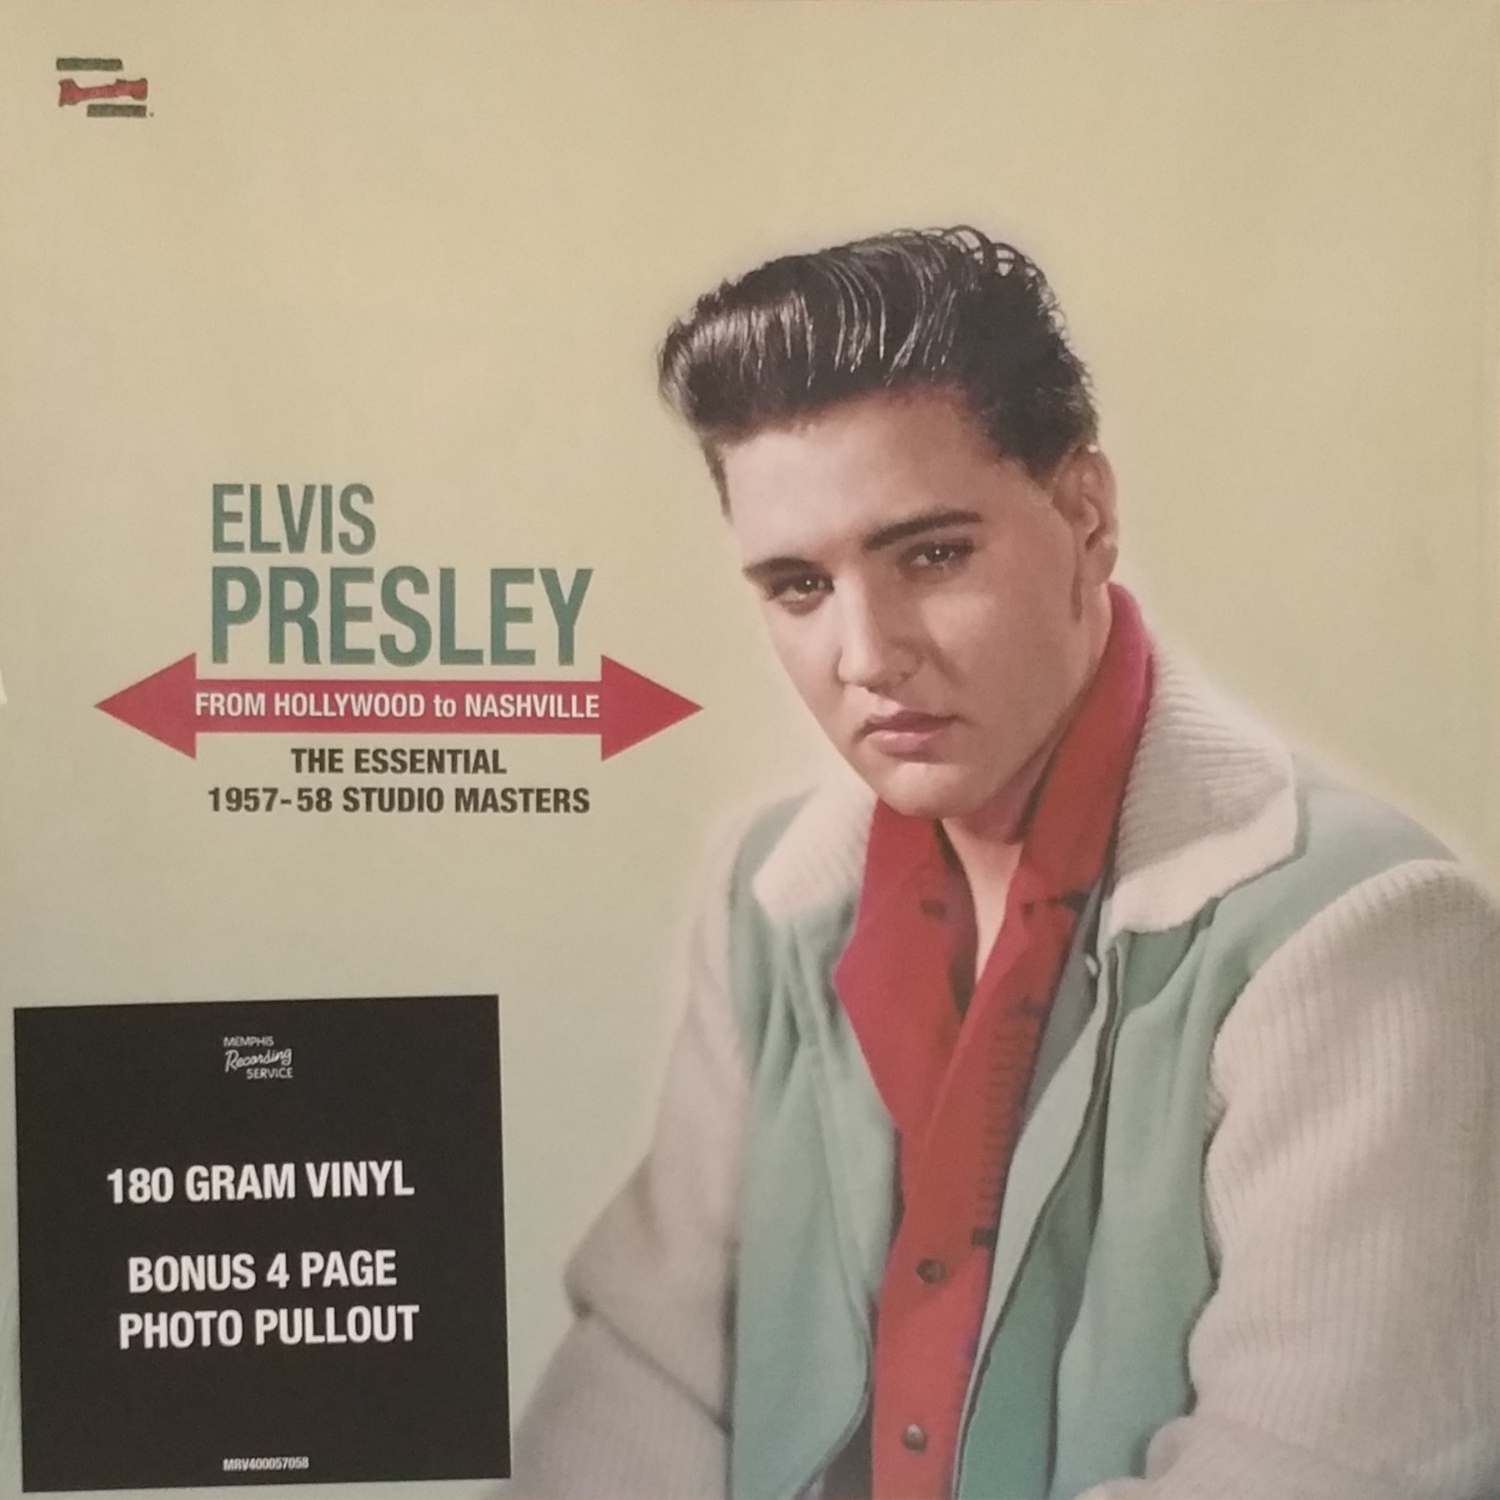 FROM HOLLYWOOD TO NASHVILLE (The Essential 1957-58 Studio Masters) 1nxkhi